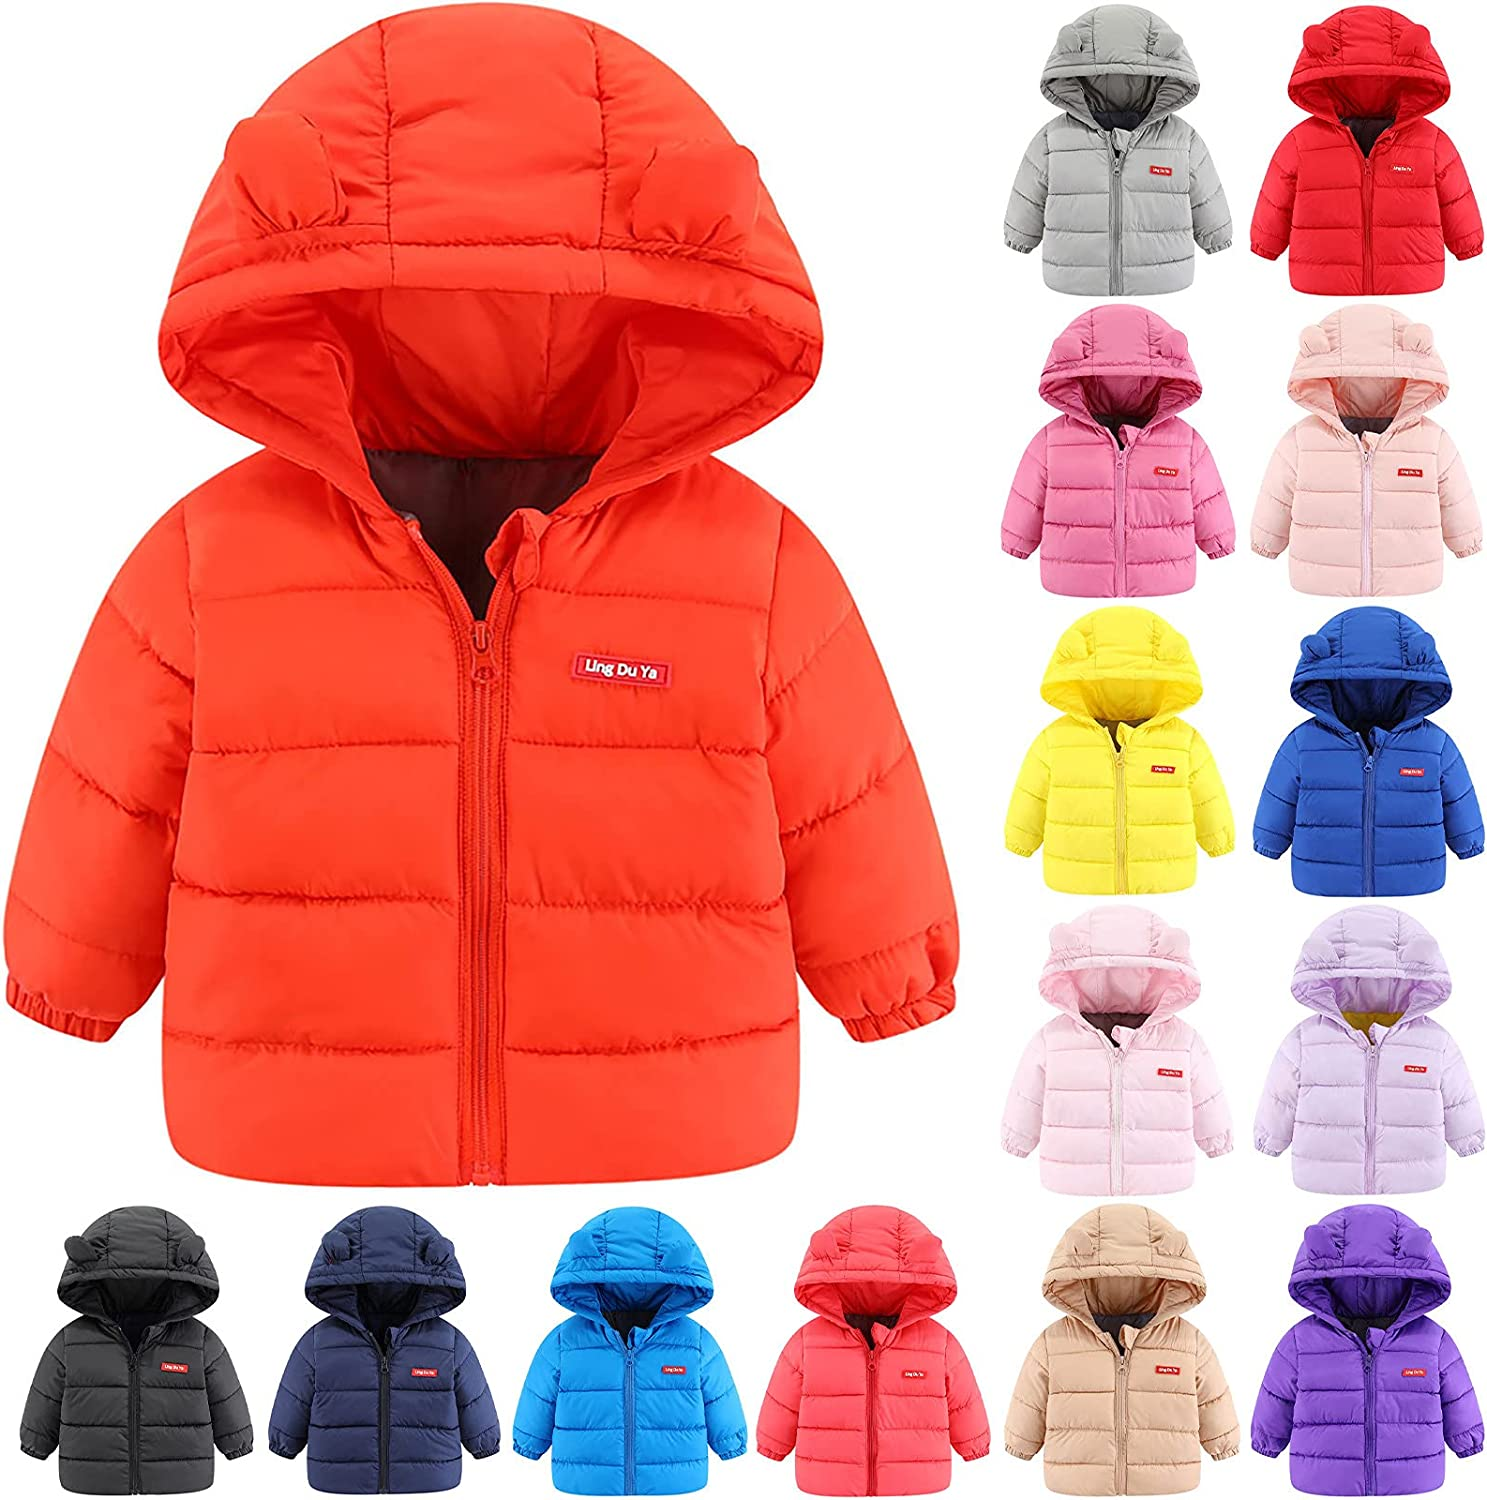 Baby Girls Boys Winter Coats Cute Gifts Manufacturer direct delivery Light Puffer Bear Cotton Warm